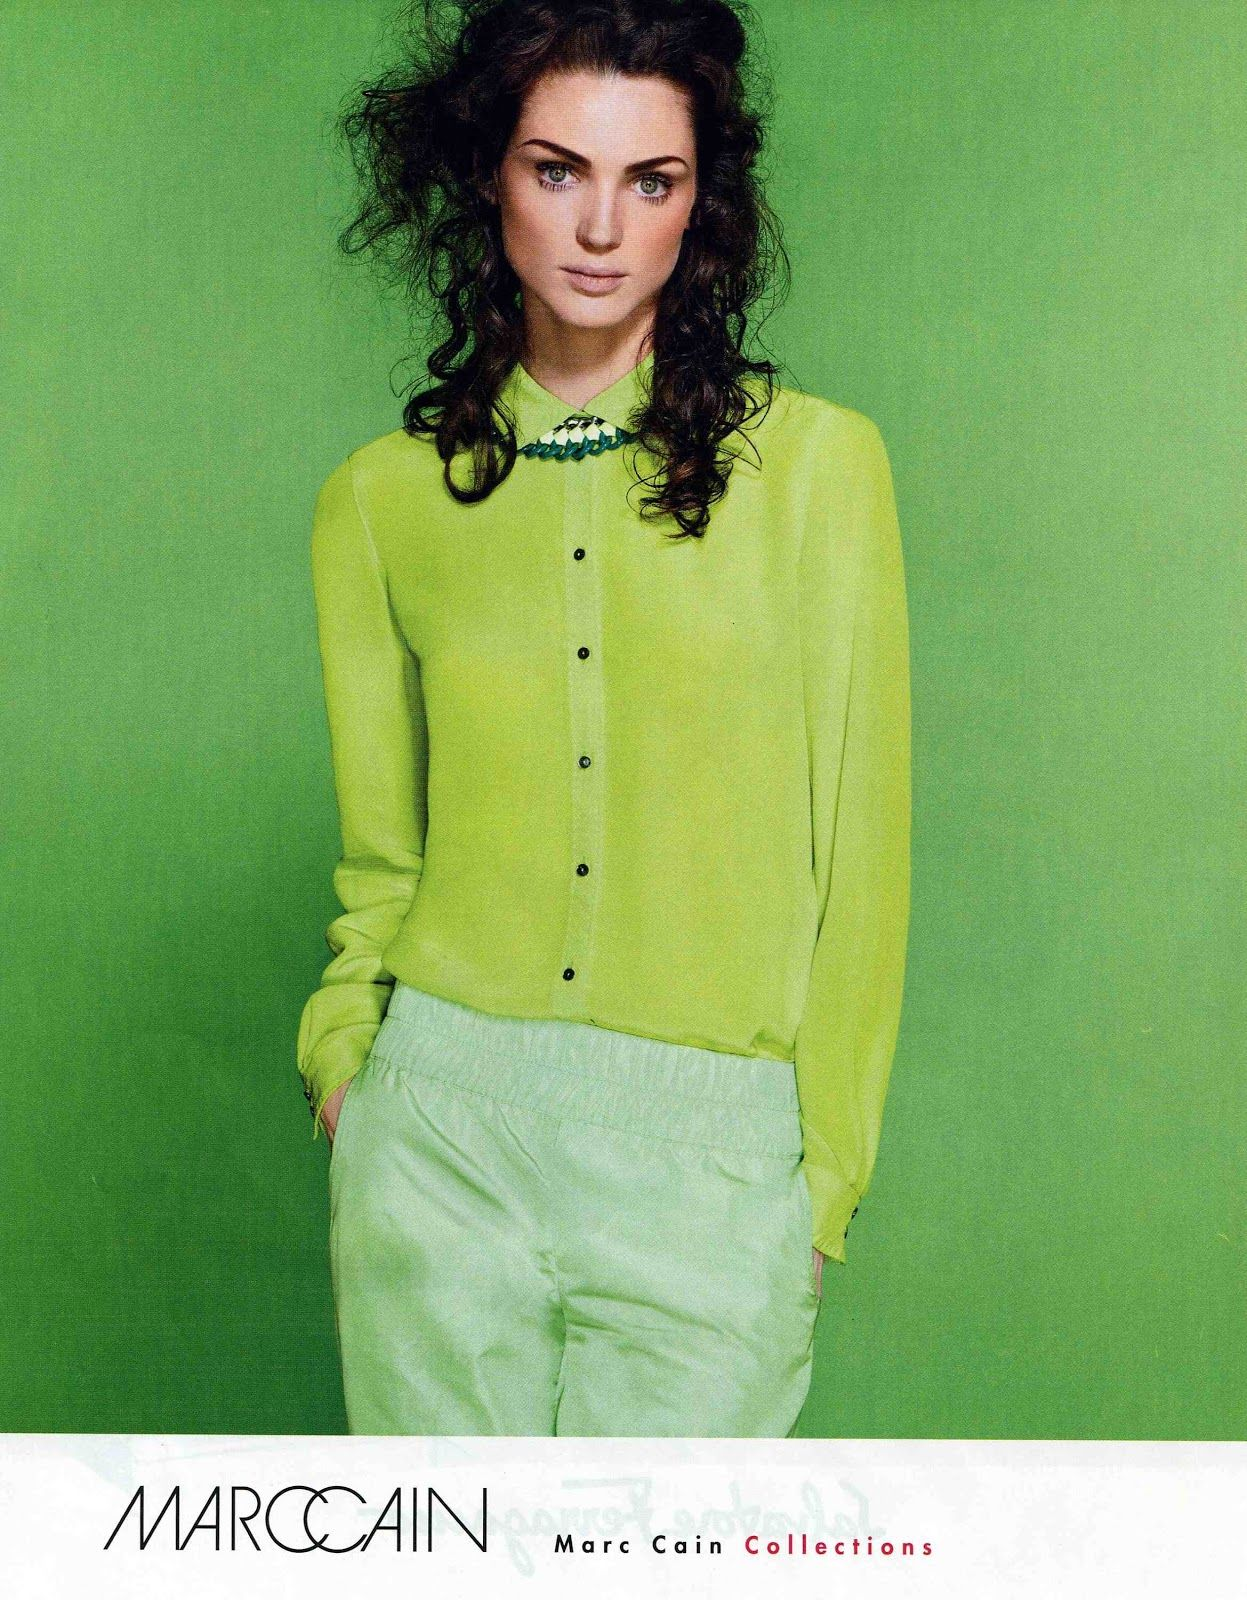 I love this but I know without the green background it would look awful, plus the trousers are a bit dodge but I do like the idea of wearing all the same colour in different shades.